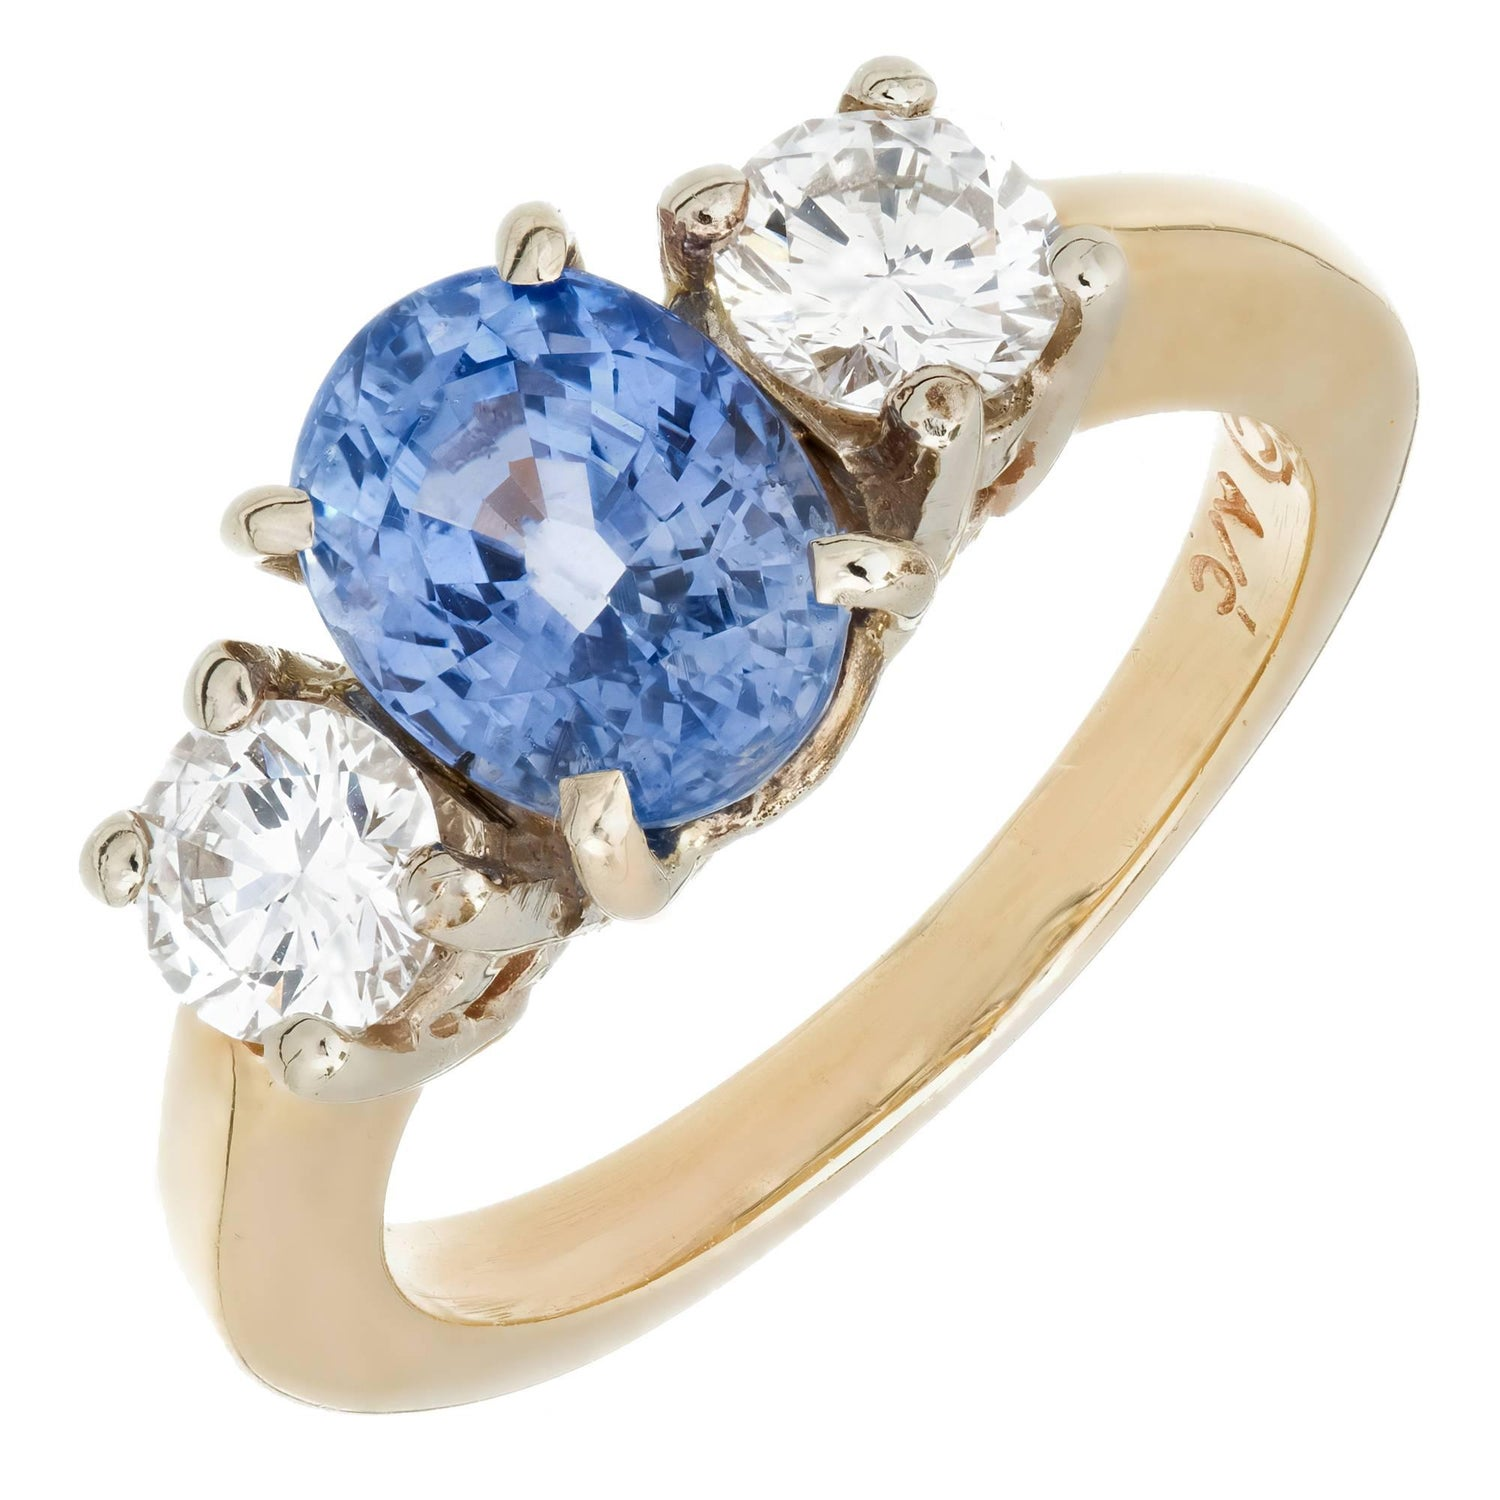 ring gold and low online amazon dp diamond in bluestone jewellery at buy white store zula prices india sapphire